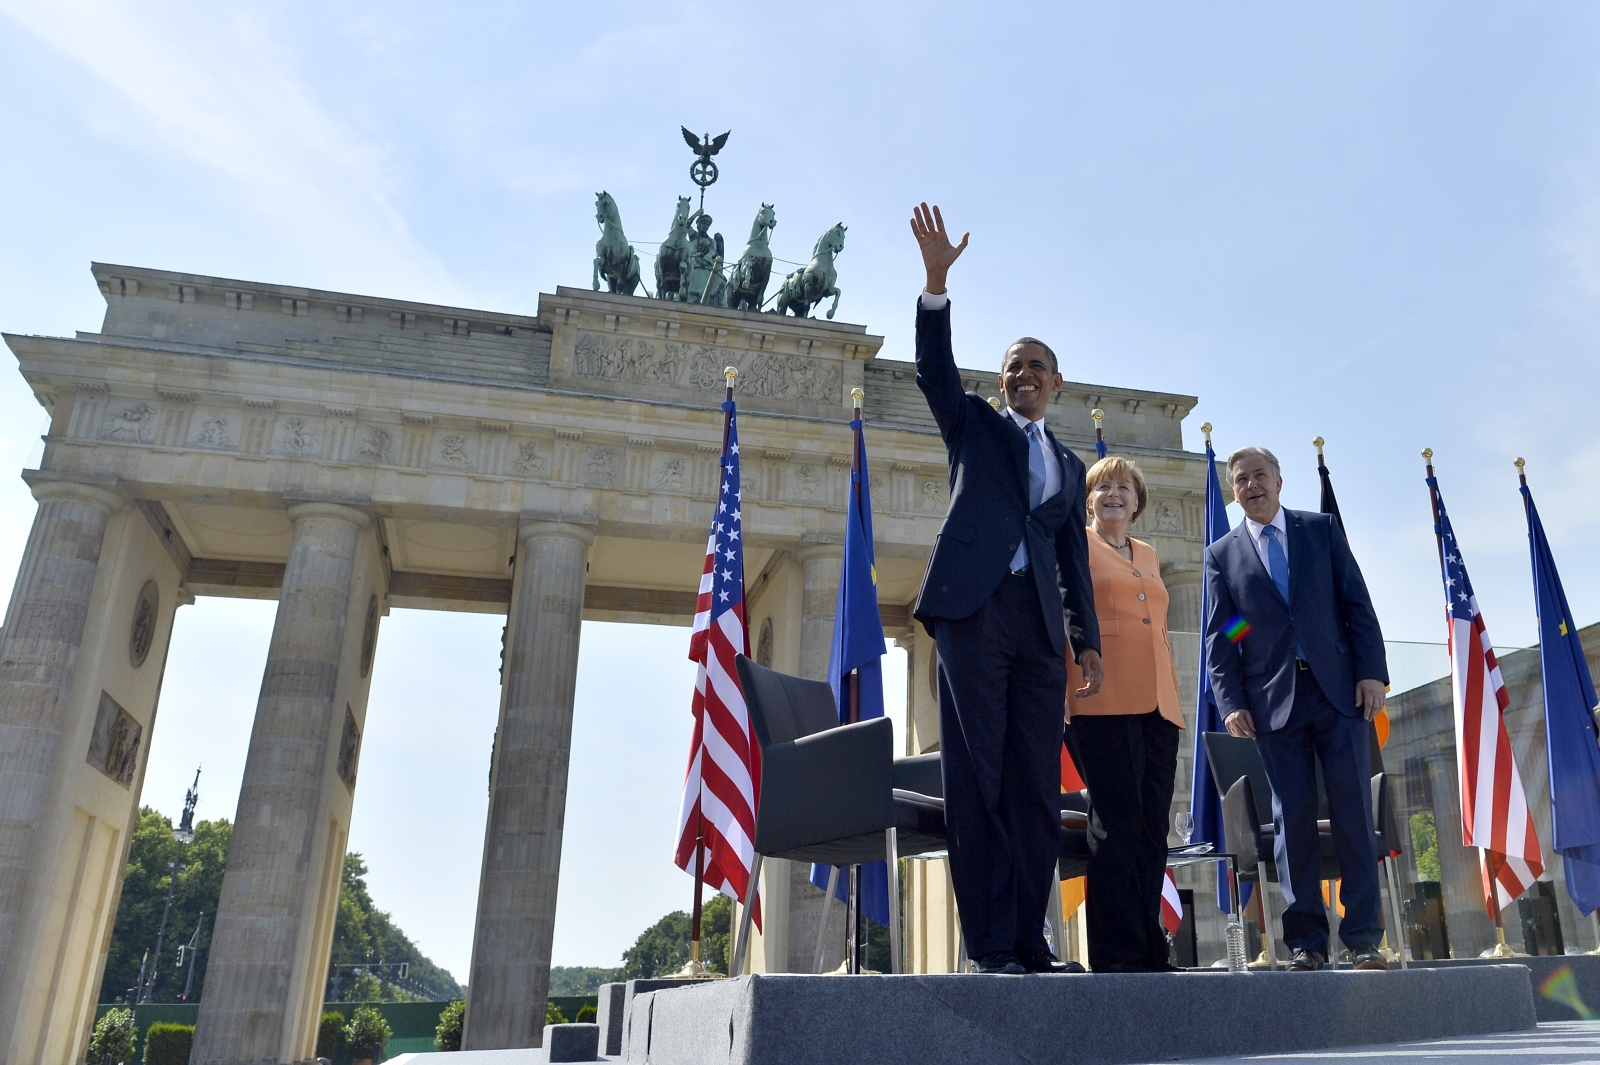 Barack Obama in Berlin, Brandenburg Gate